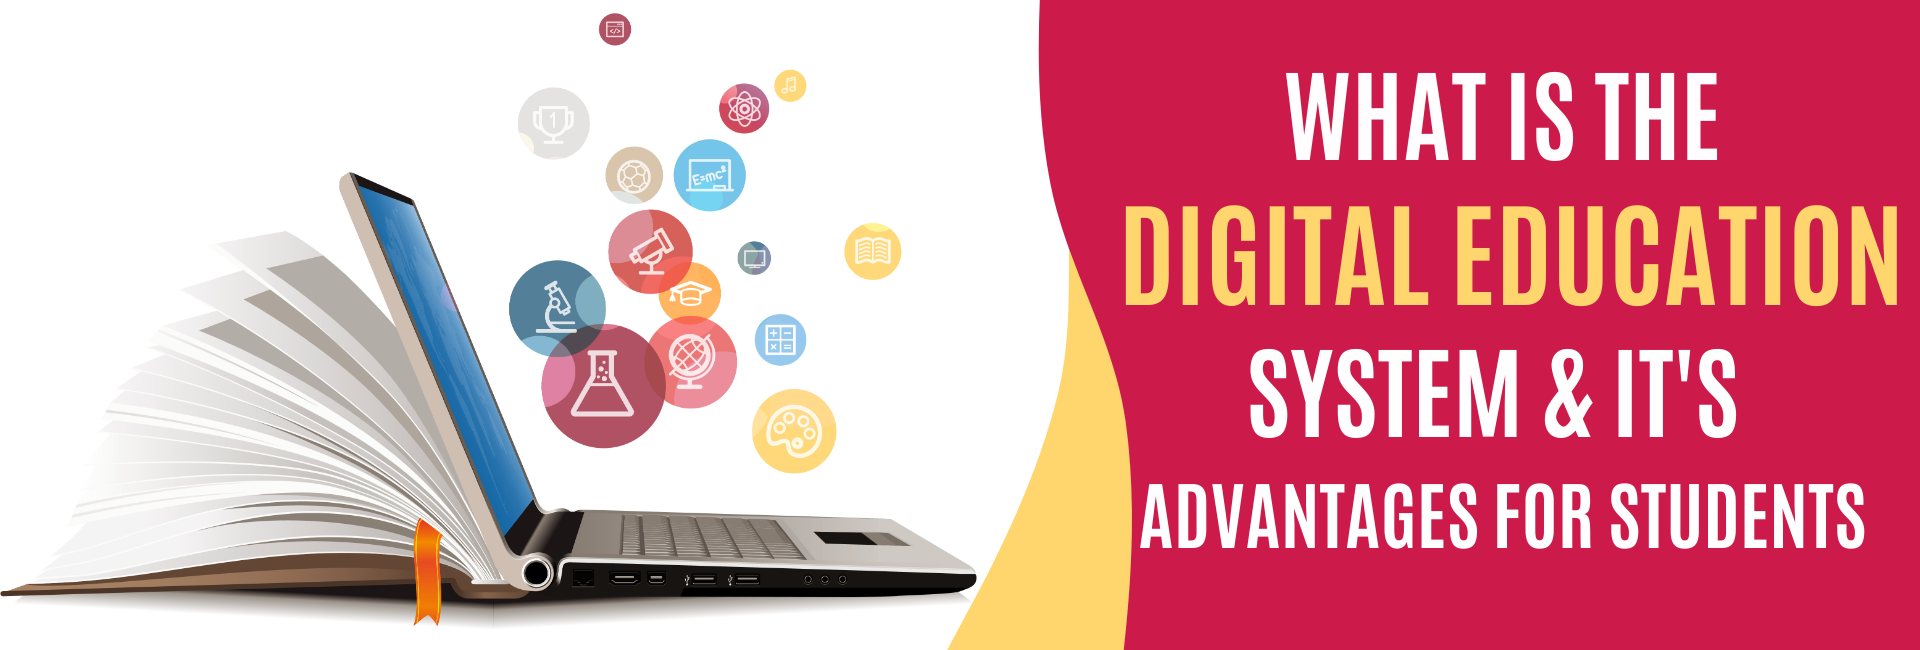 What Is The Digital Education System And Its Advantages For Students-featured image